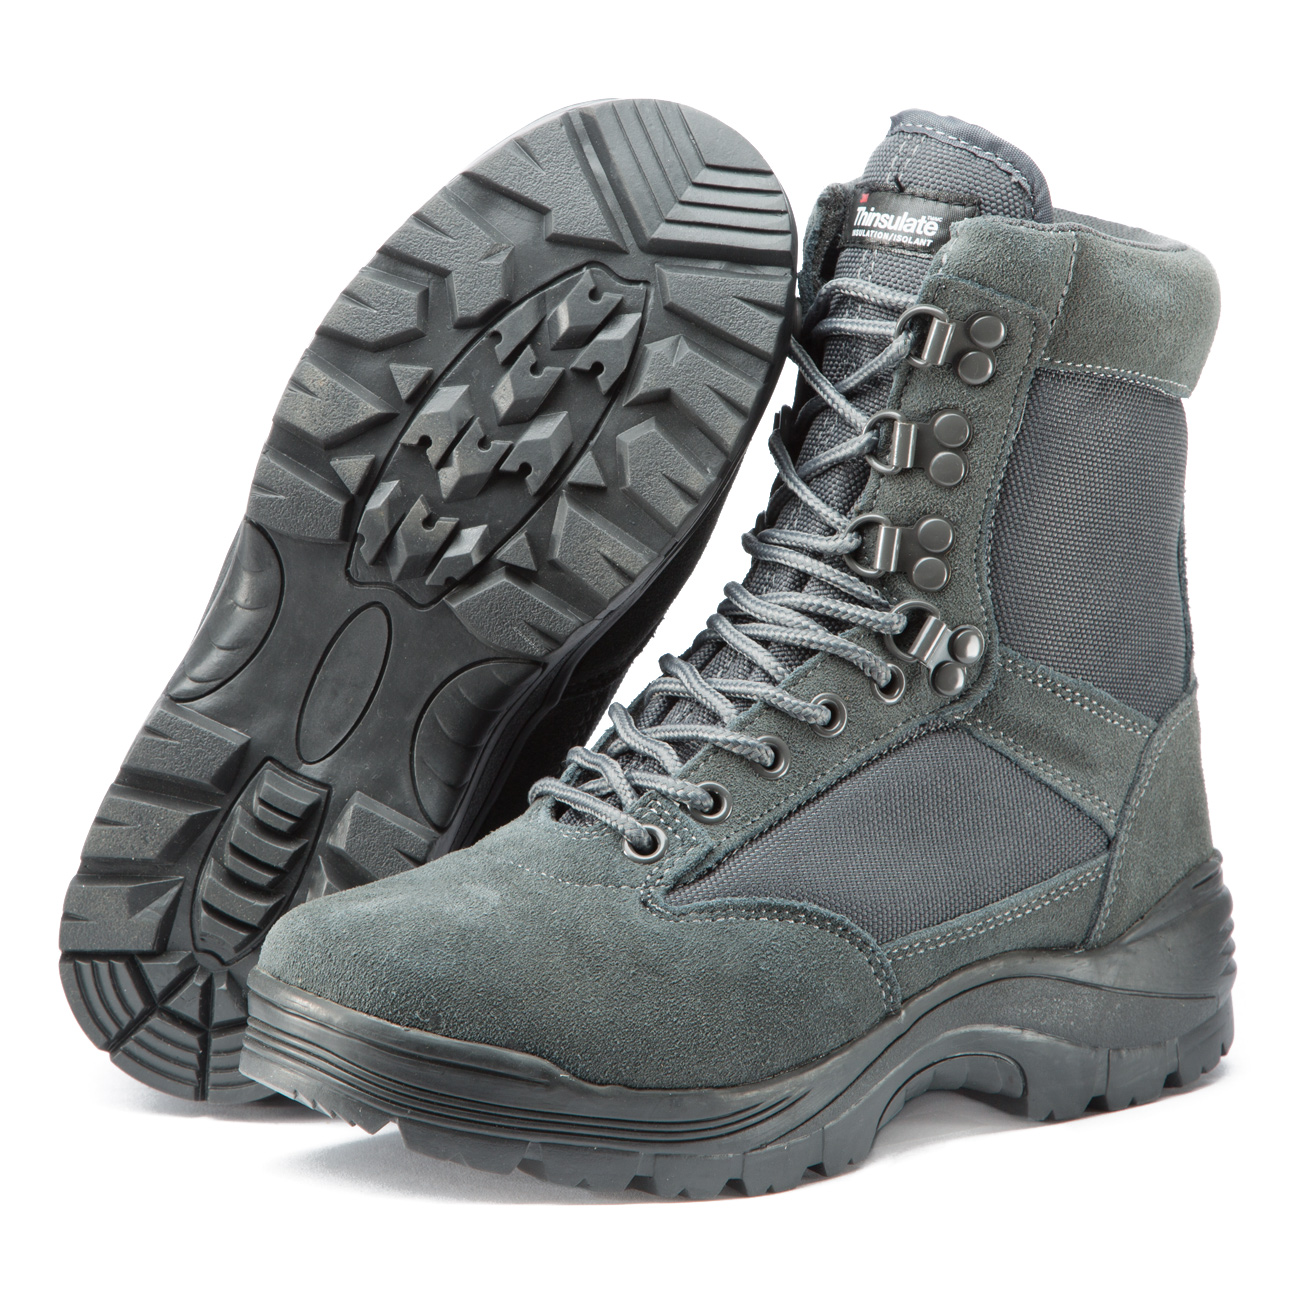 Mil-Tec Stiefel Tactical Boots YKK-Zipper urban grey 1